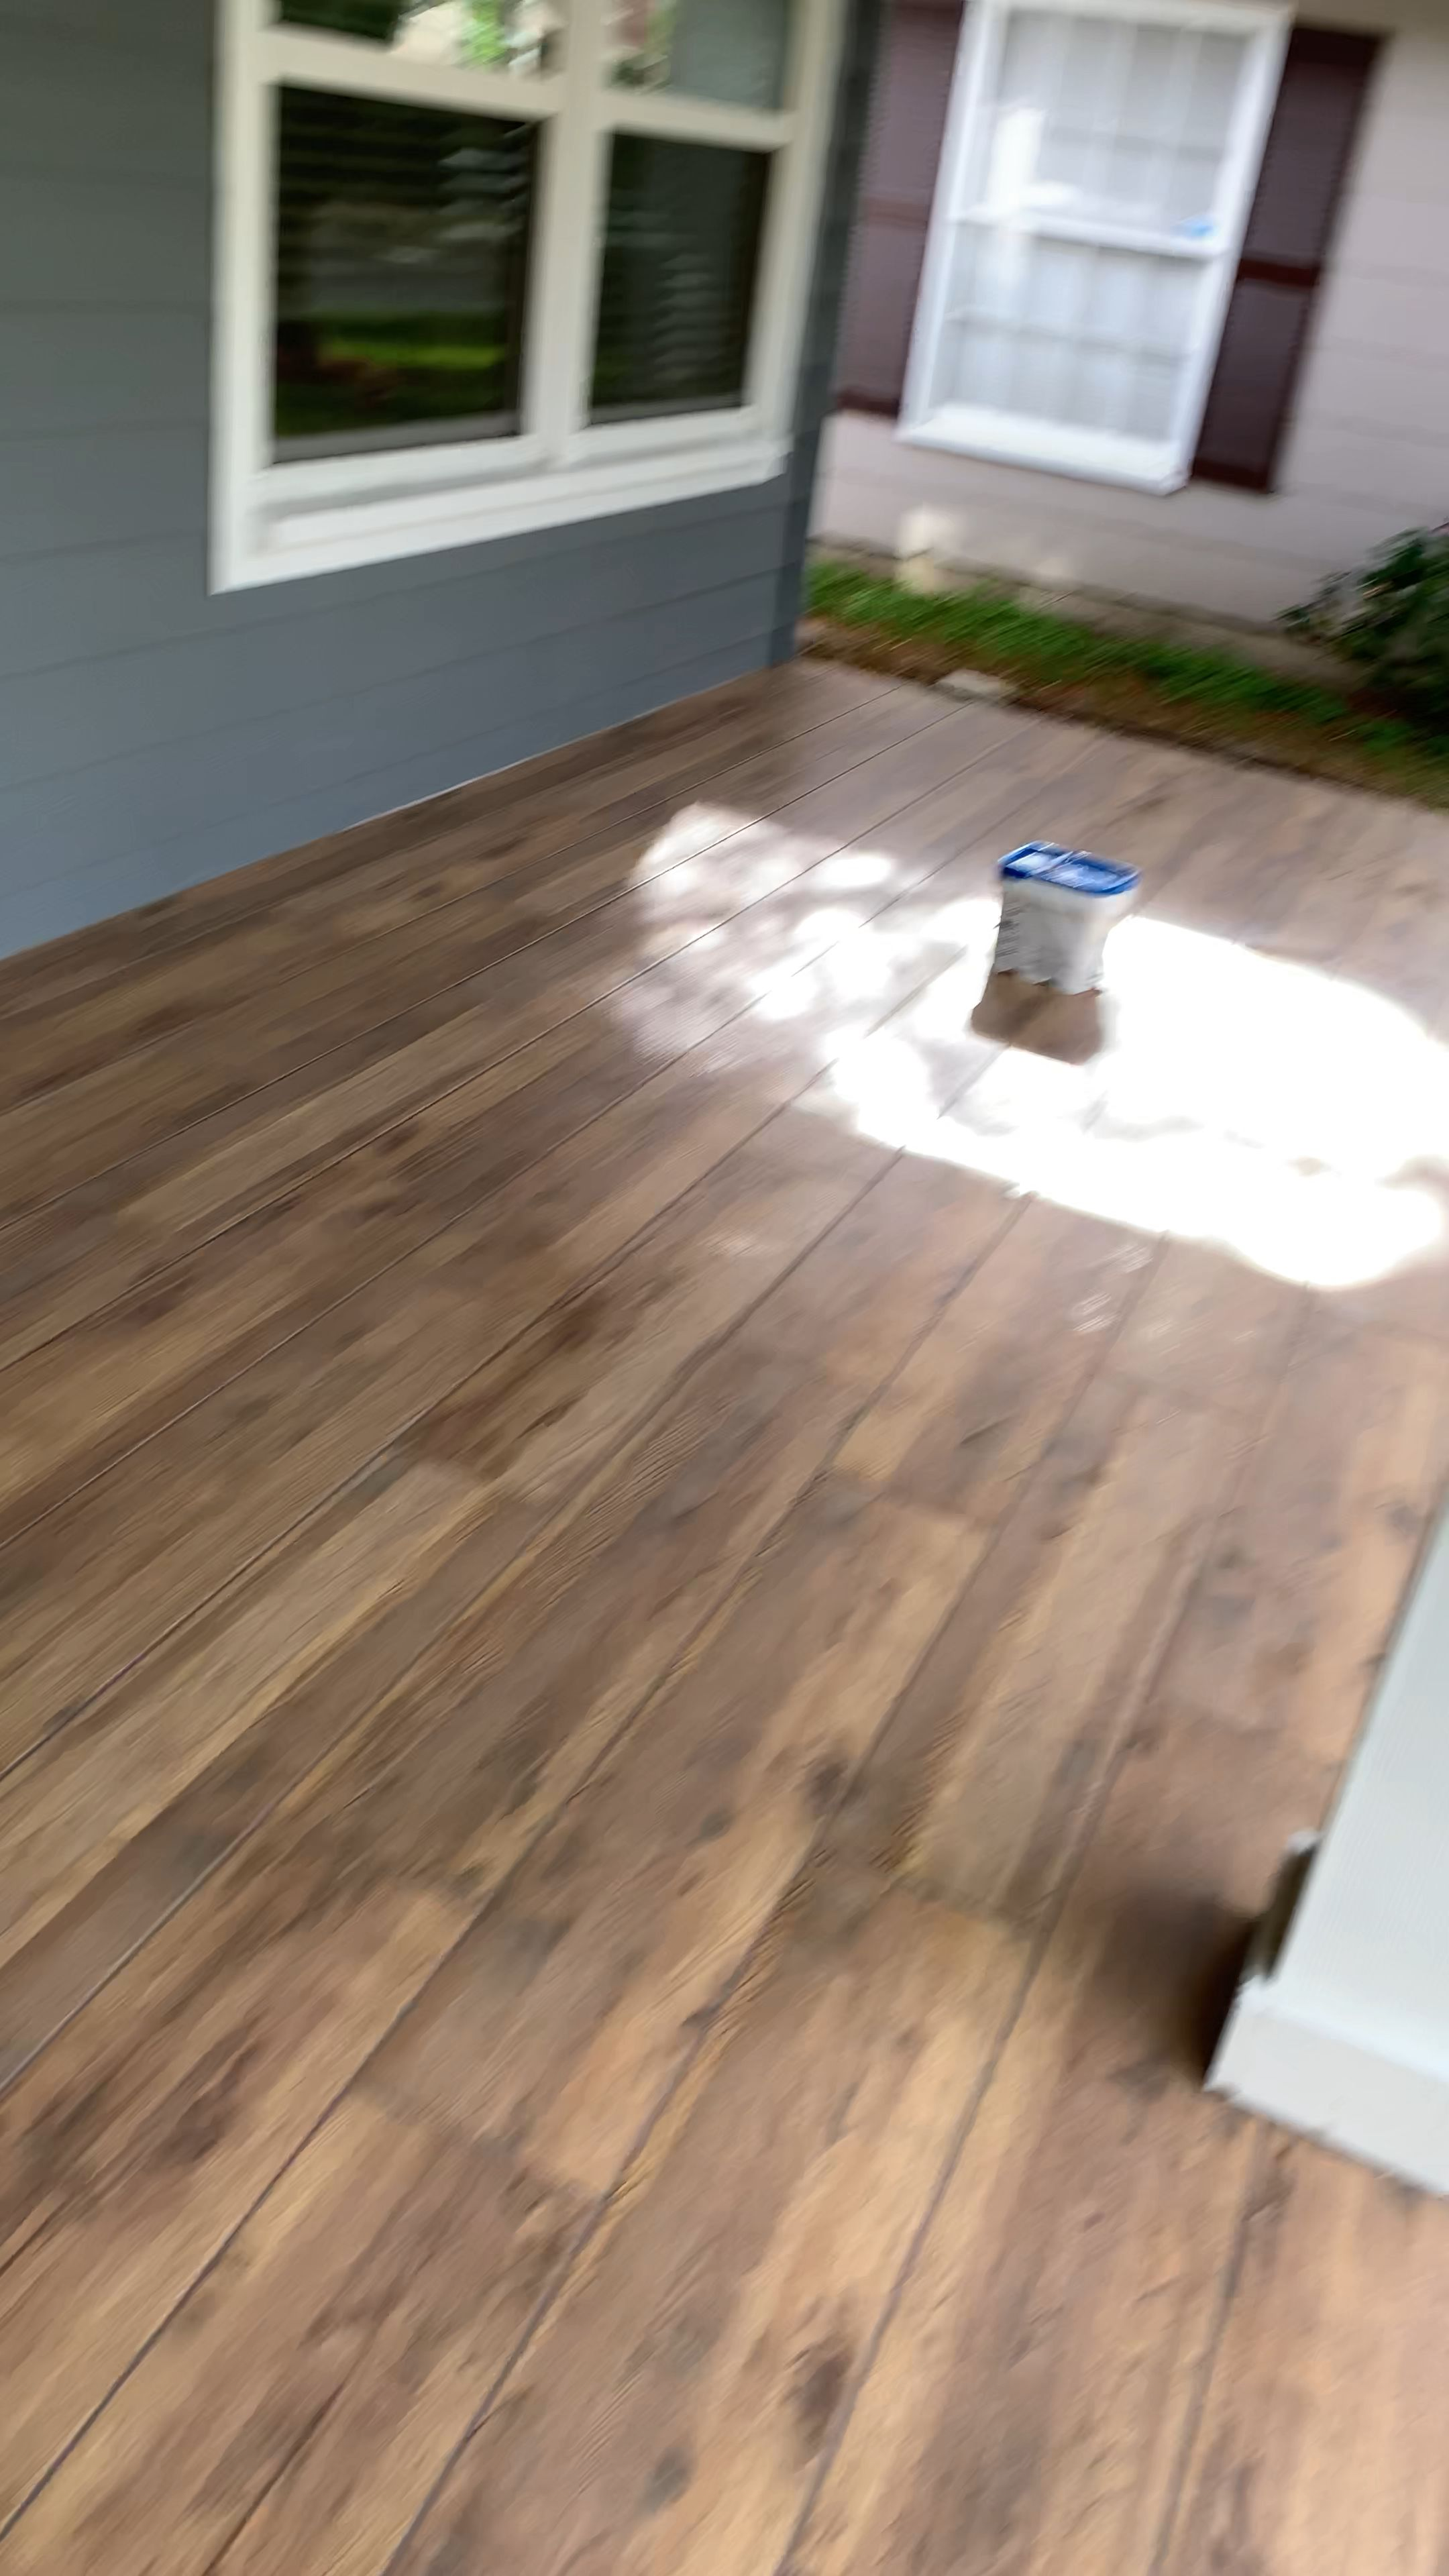 Wood Look Tile Video Wood Look Tile Wood Look Tile Floor Ceramic Wood Tile Floor